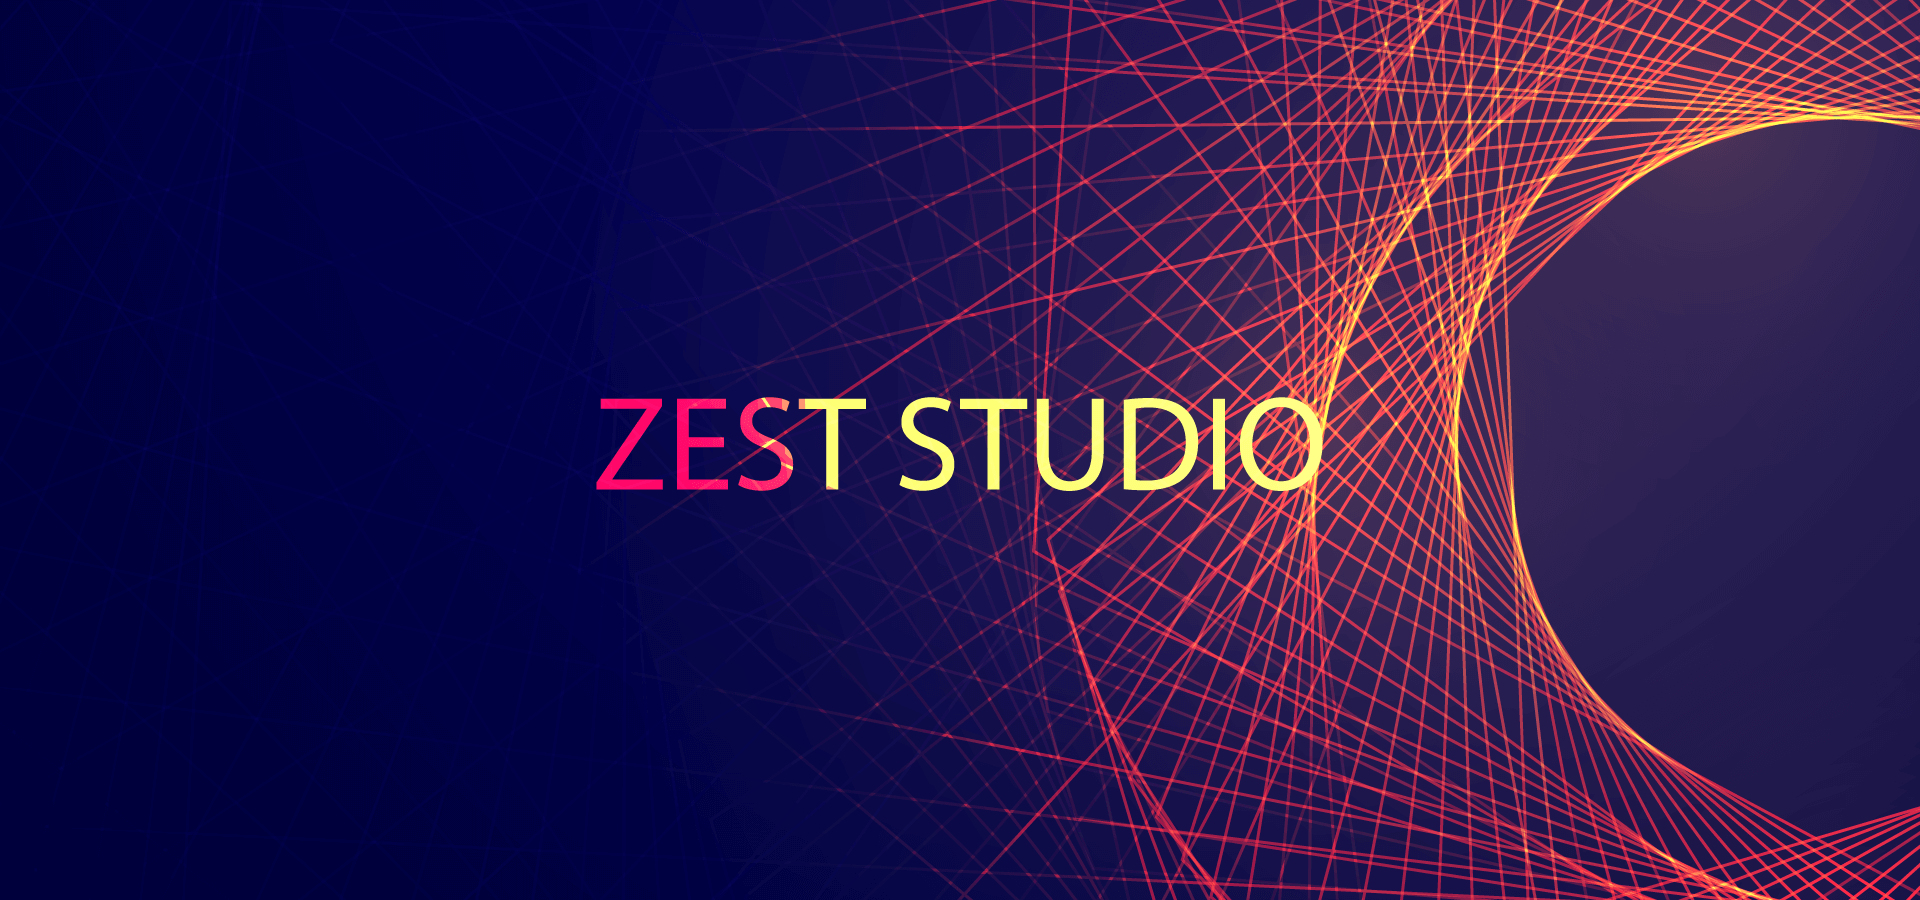 SEO for Zest Studio